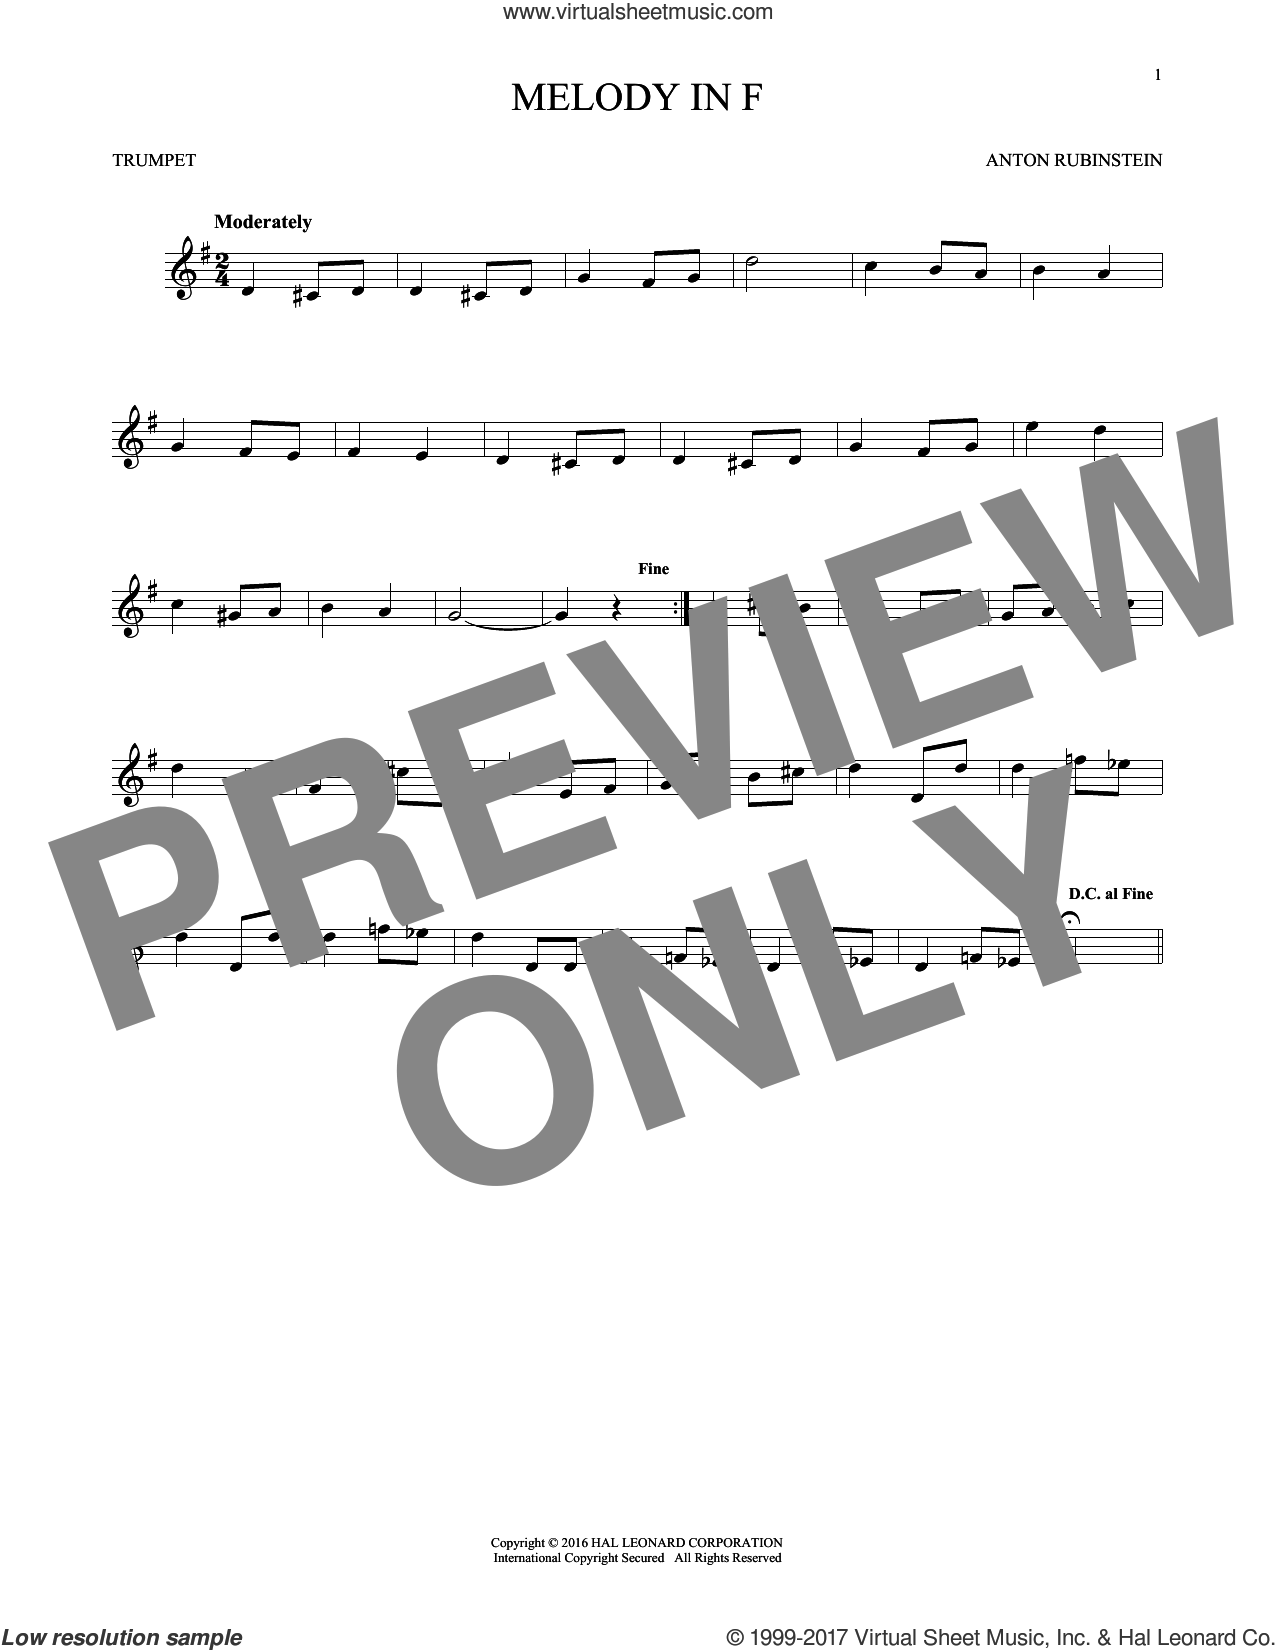 Melody In F sheet music for trumpet solo by Anton Rubinstein, classical score, intermediate skill level